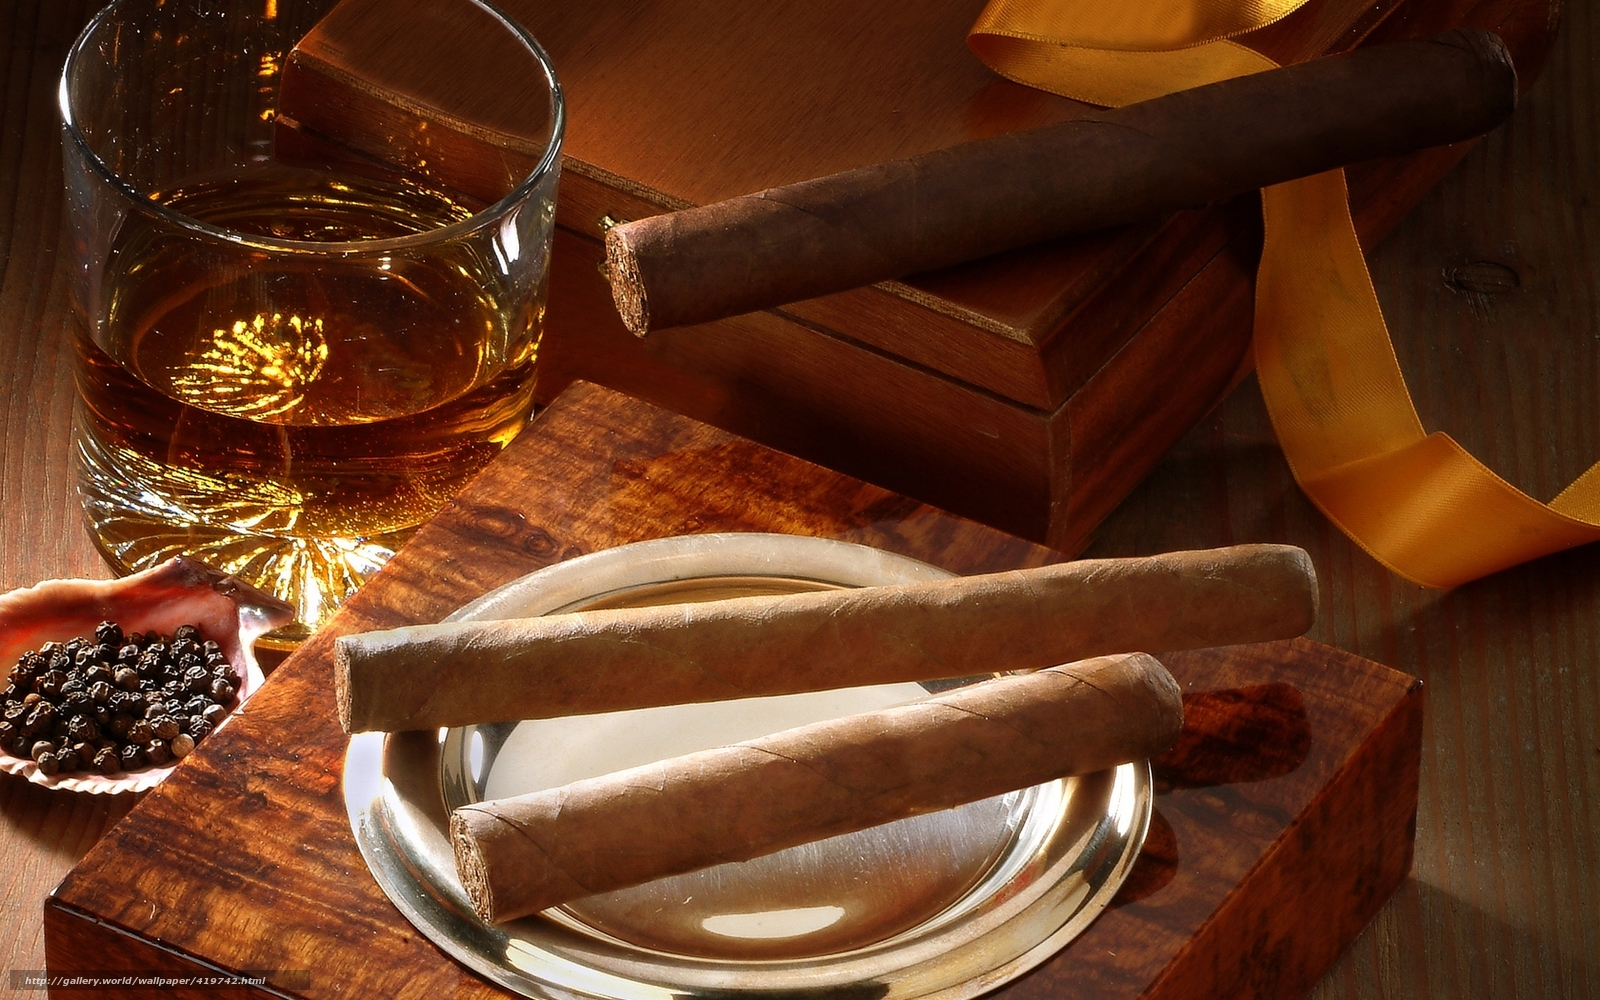 Download wallpaper Cigars box whiskey glass desktop wallpaper 1600x1000